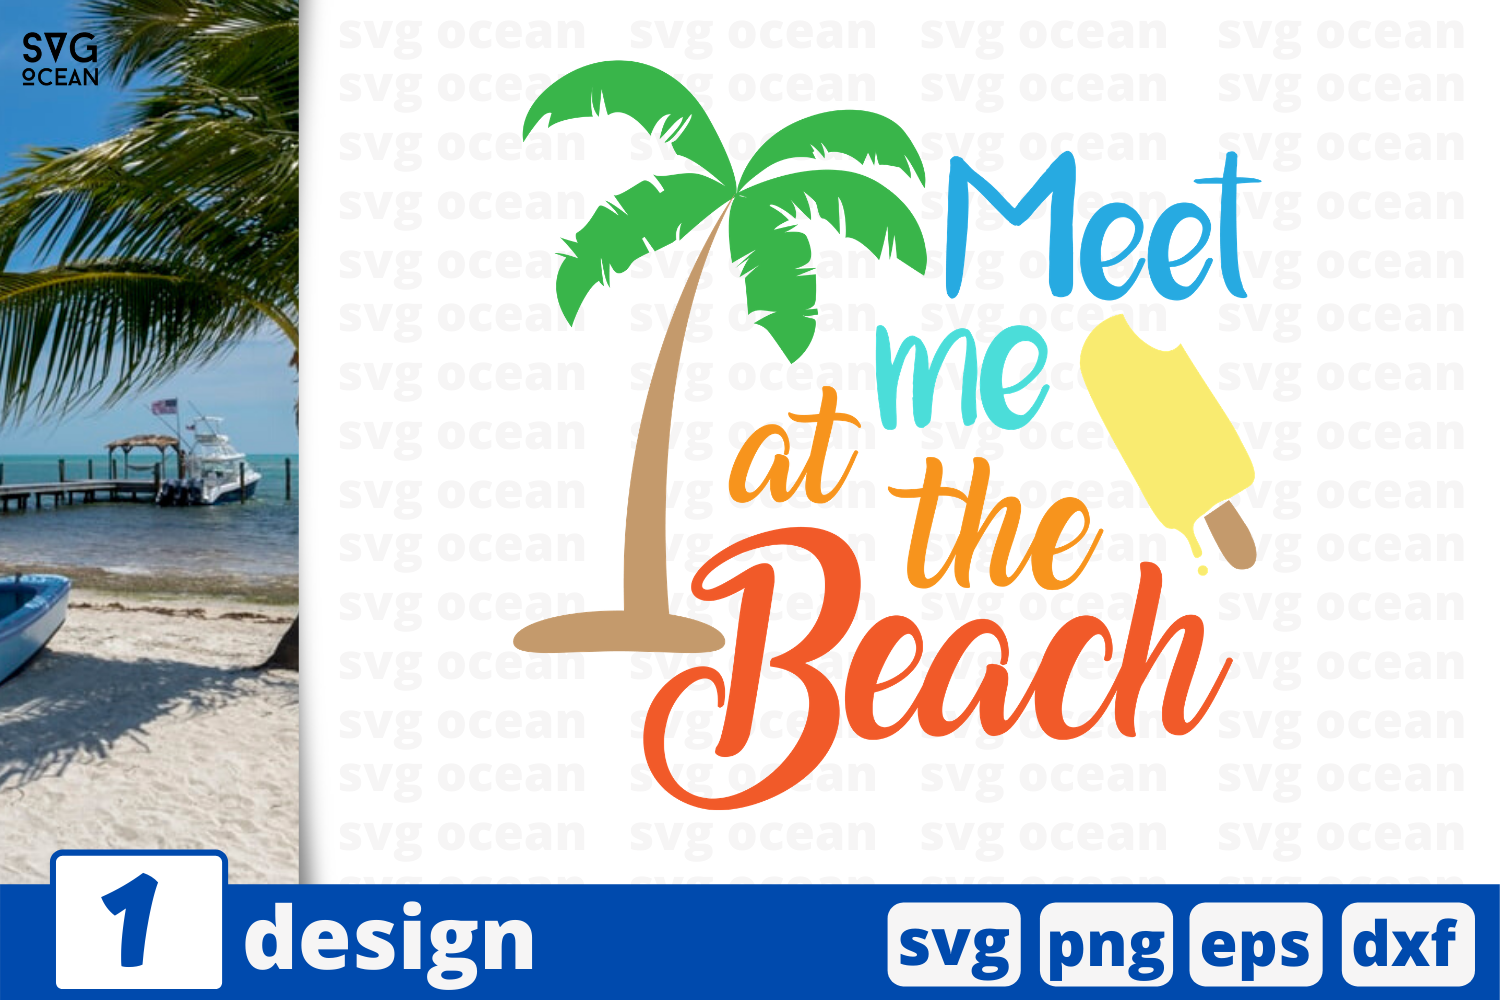 Download Free 1 Meet Me At The Beach Summer Svg Cricut Graphic By Svgocean for Cricut Explore, Silhouette and other cutting machines.